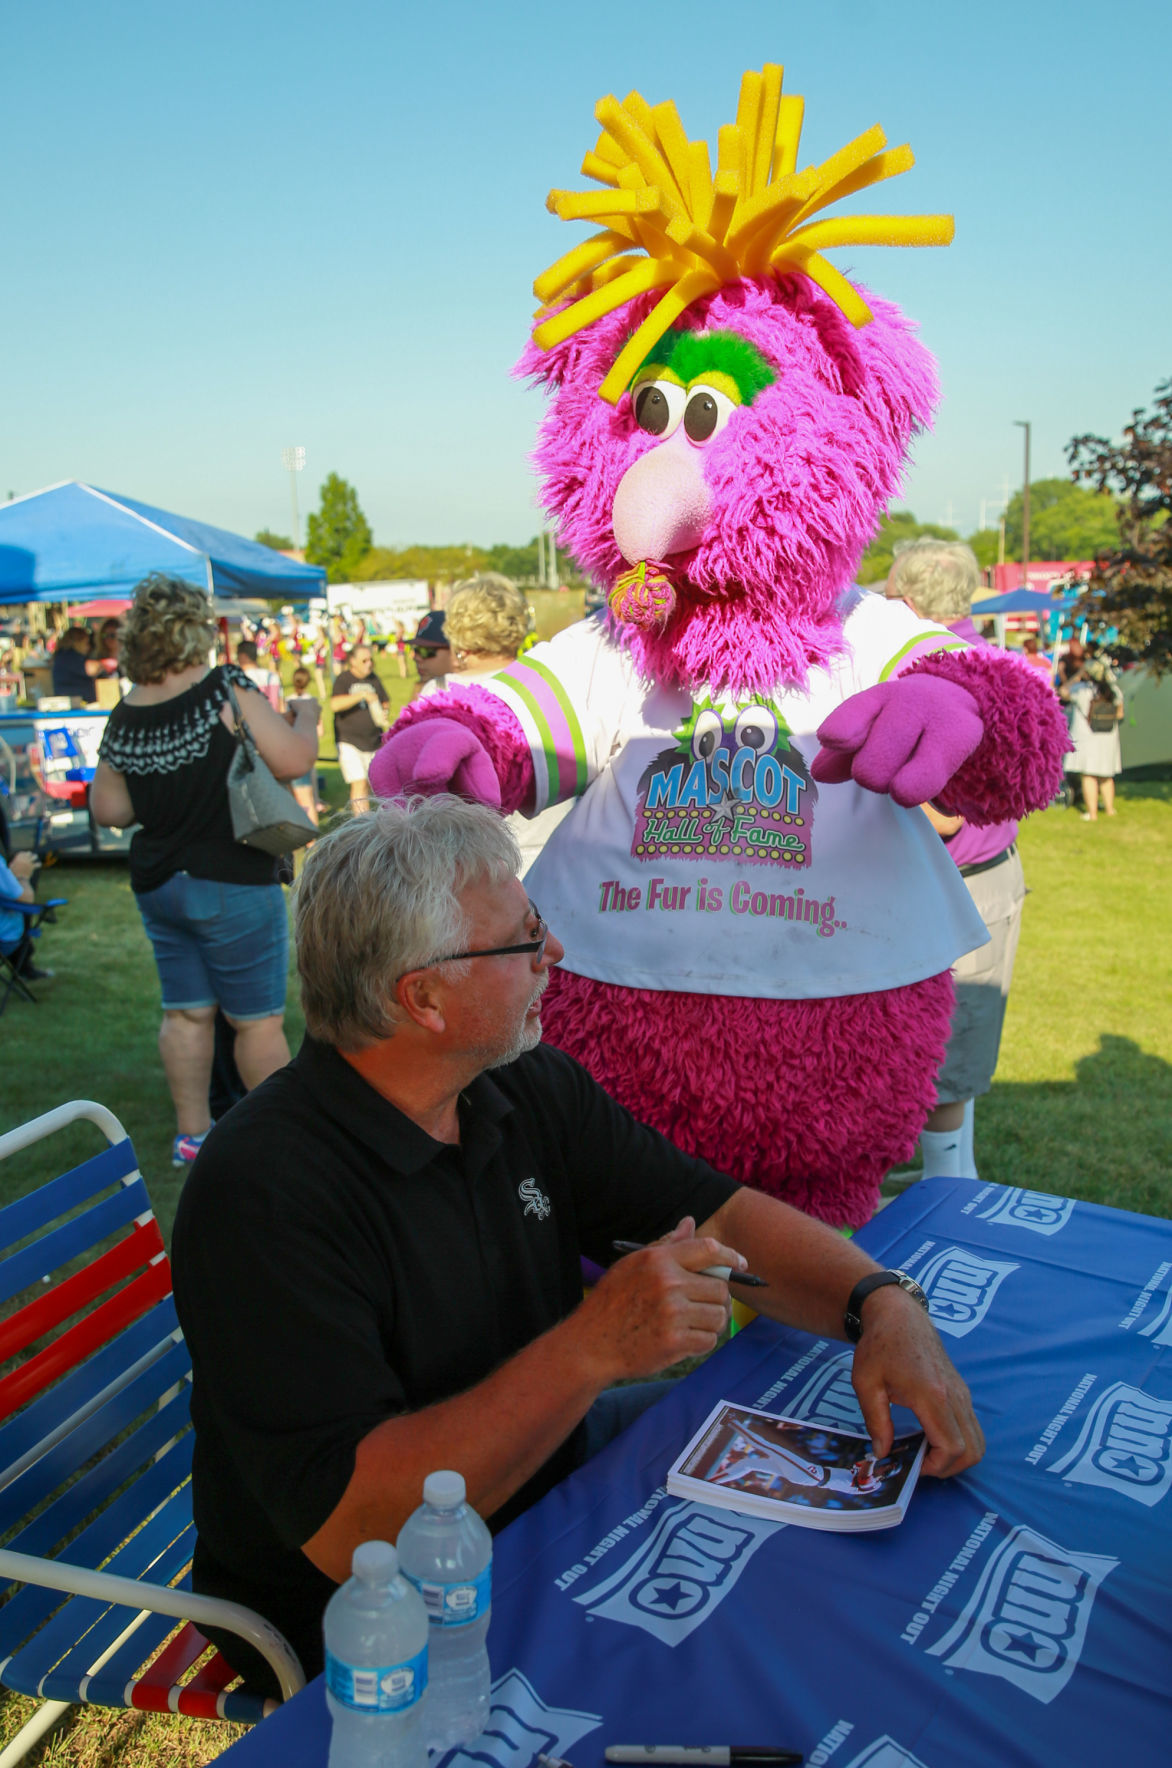 Ron Kittle at the Munster Night Out Against Crime